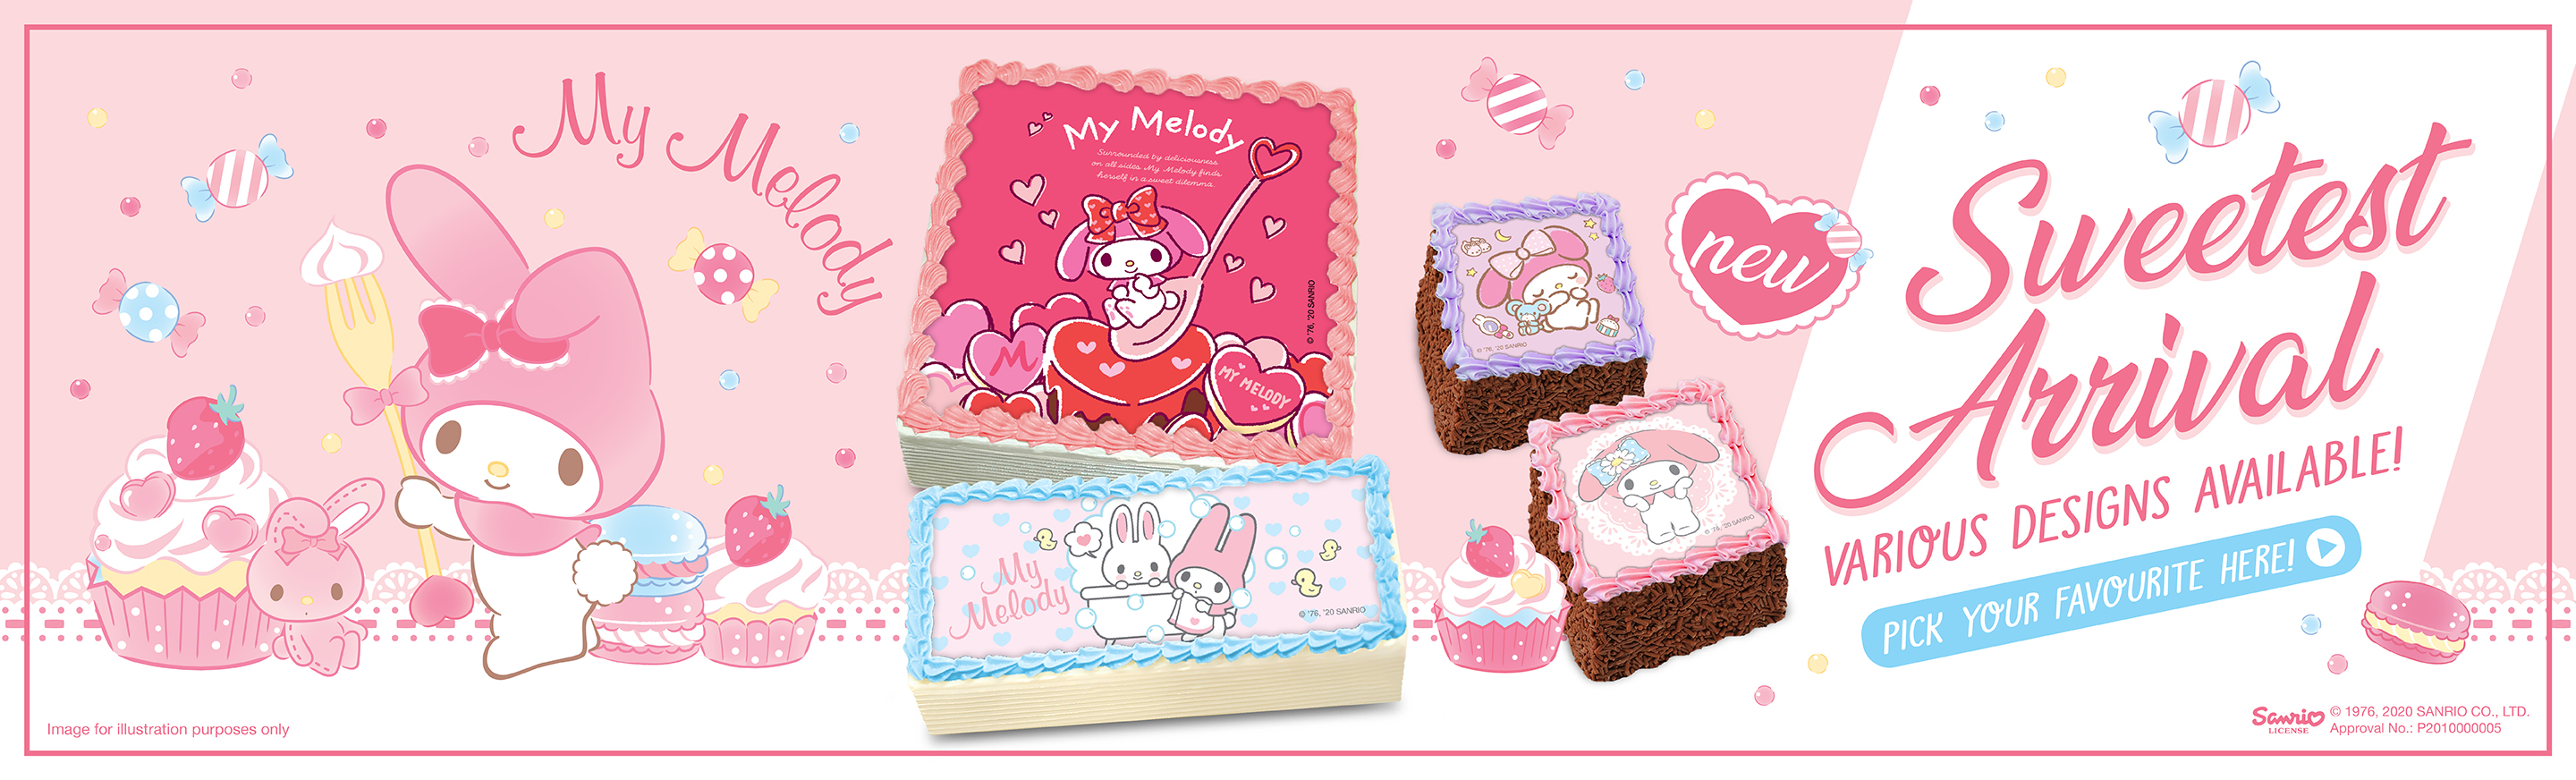 My Melody Character Cakes